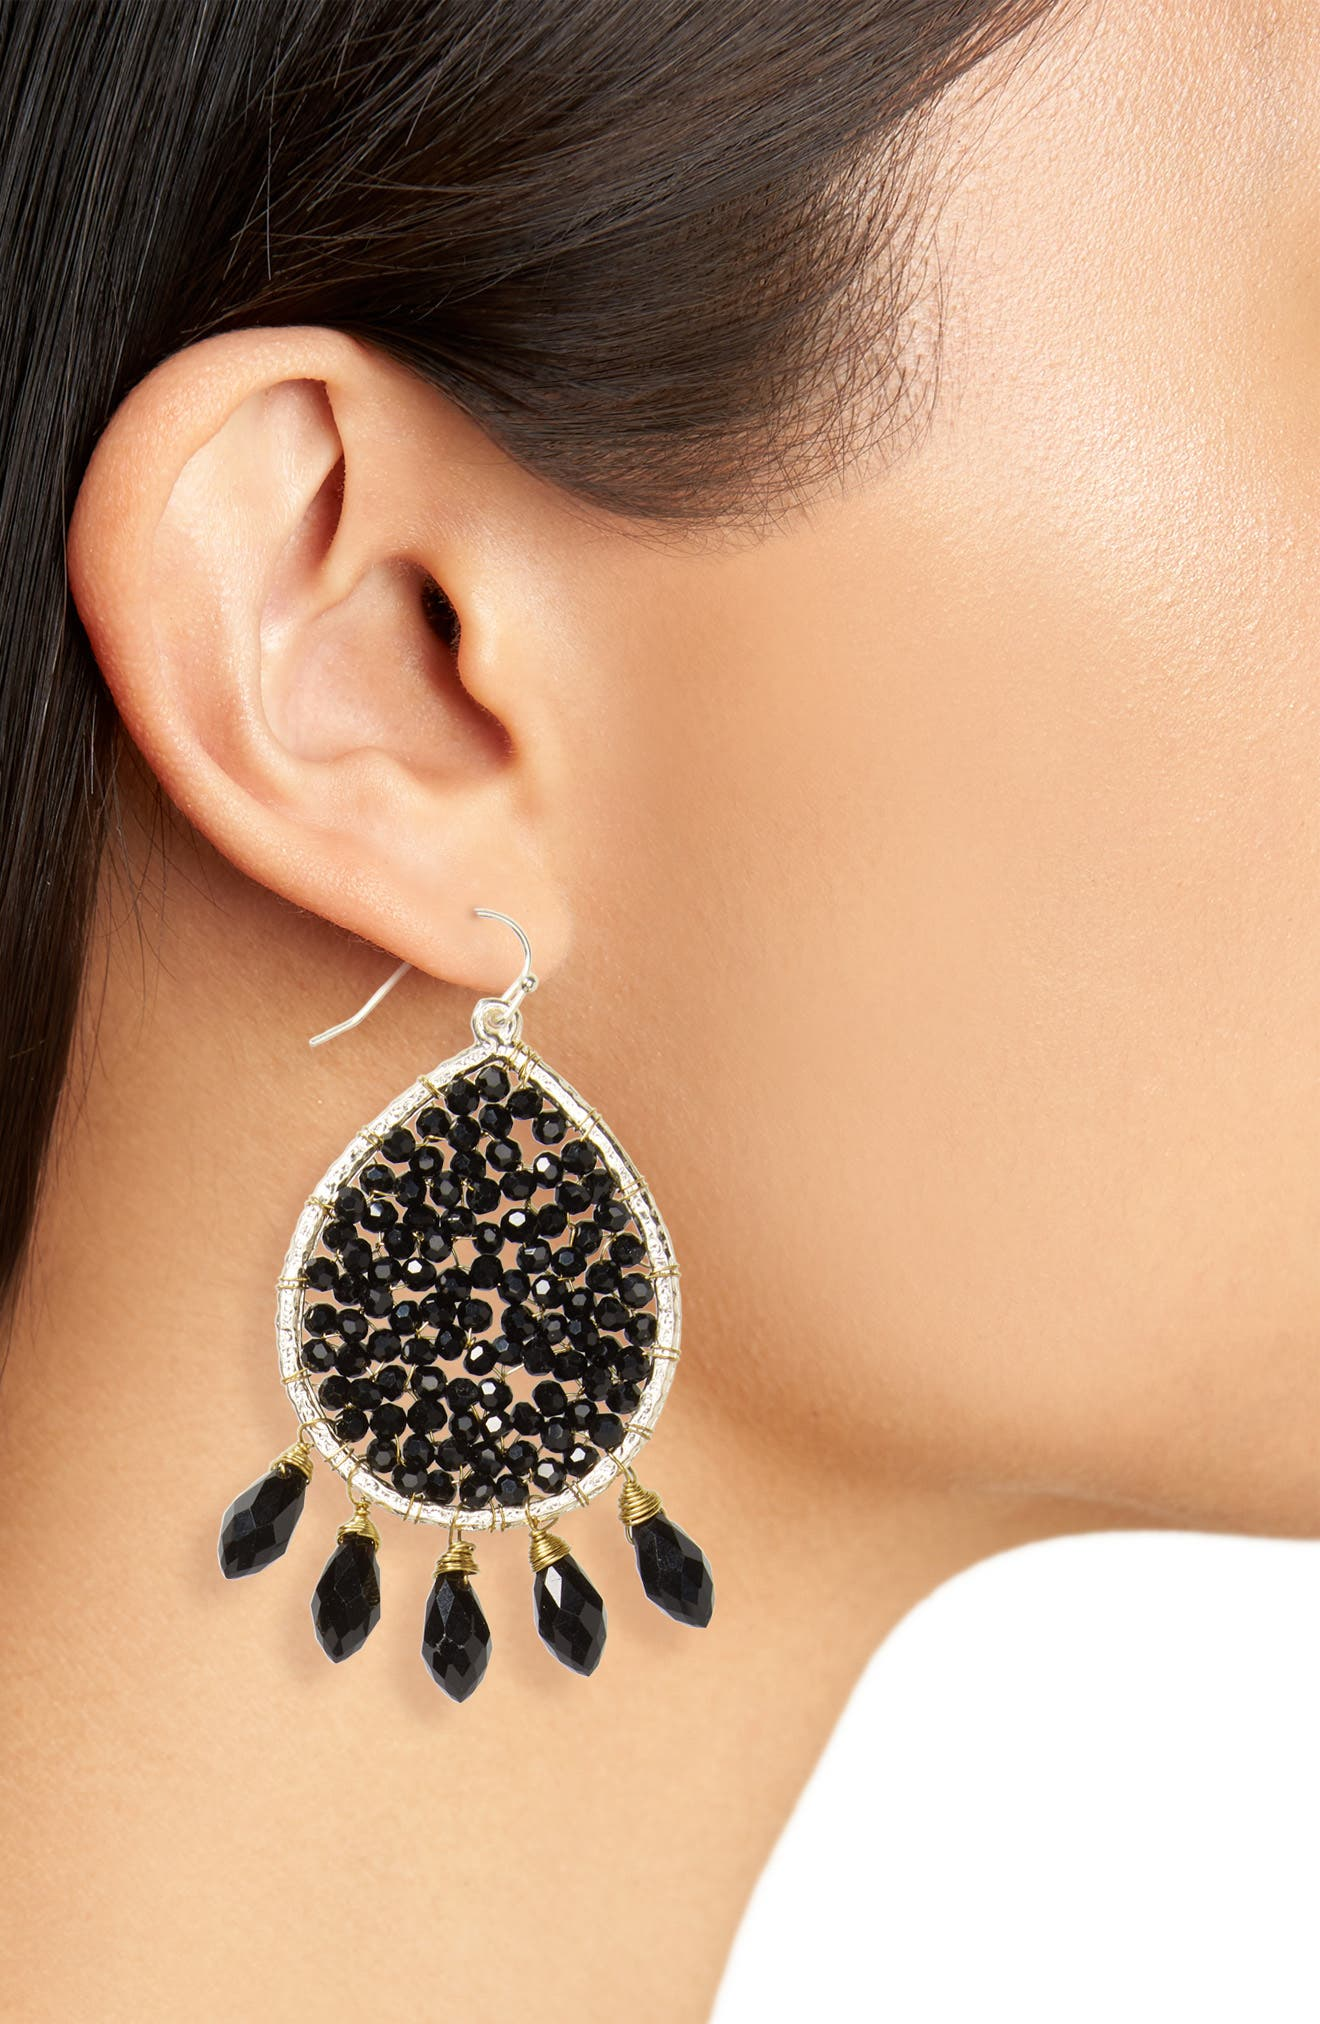 Crystal Teardrop Earrings,                             Alternate thumbnail 2, color,                             Black